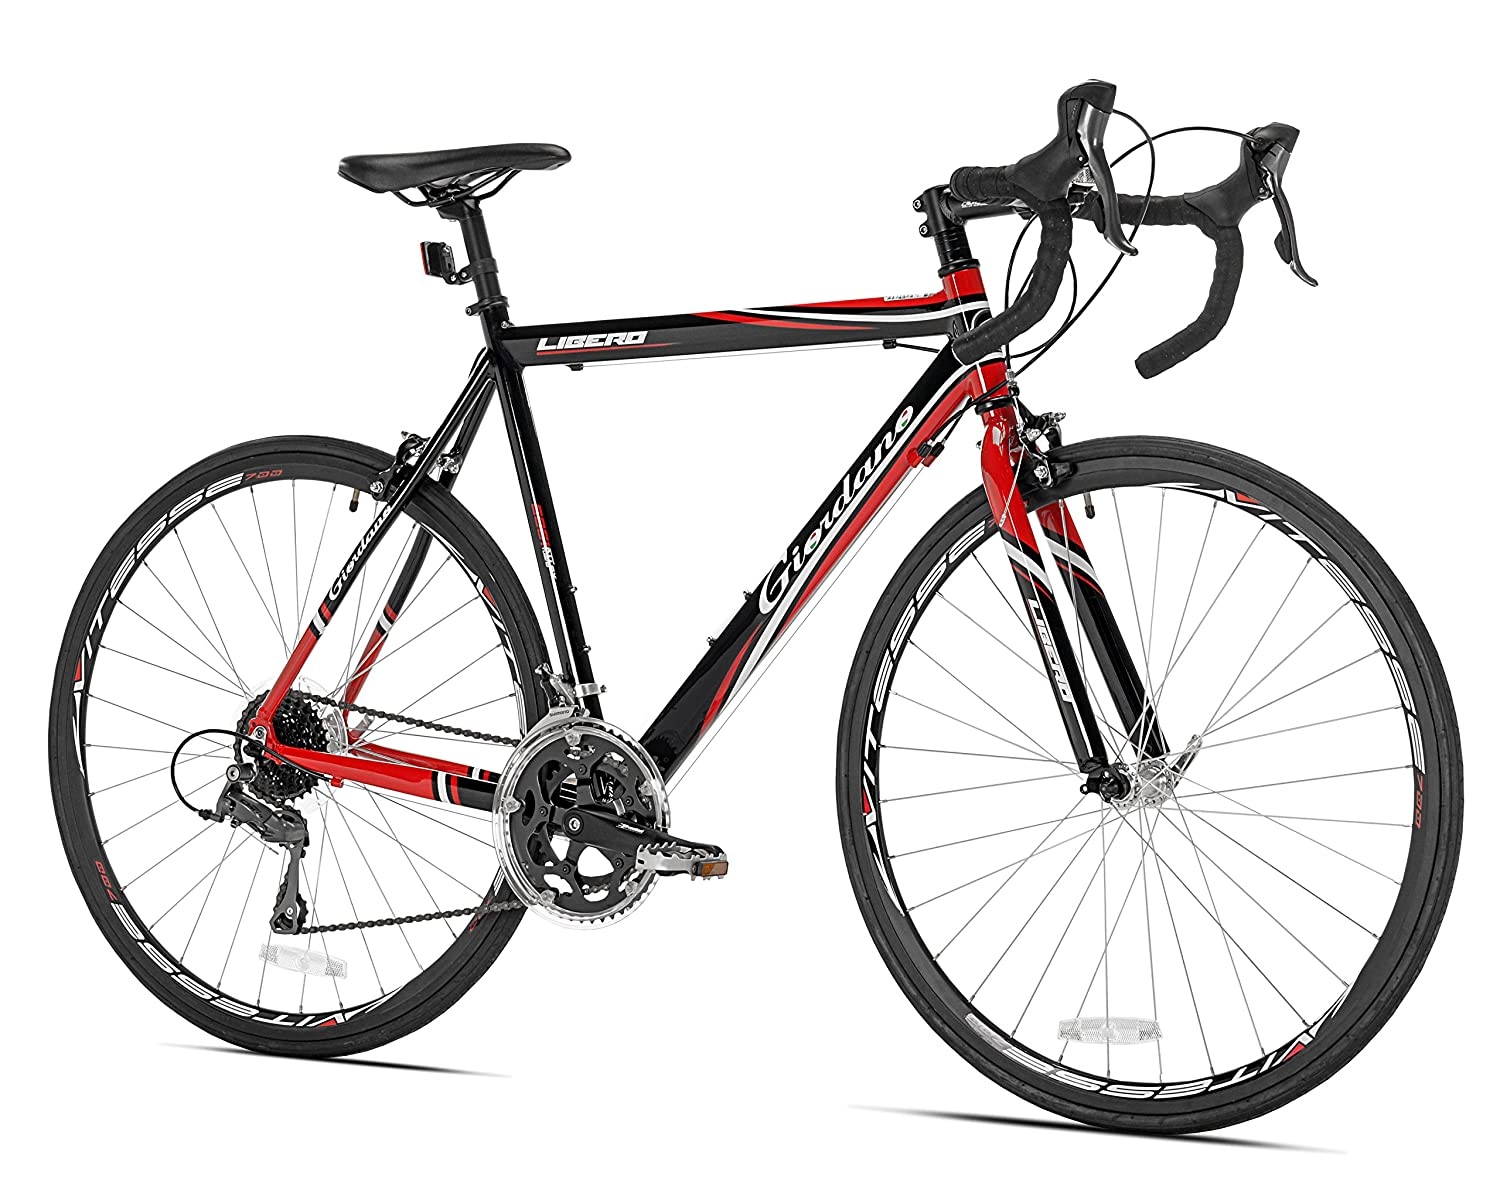 Giordano Libero 1.6 Men's Road Bike-700